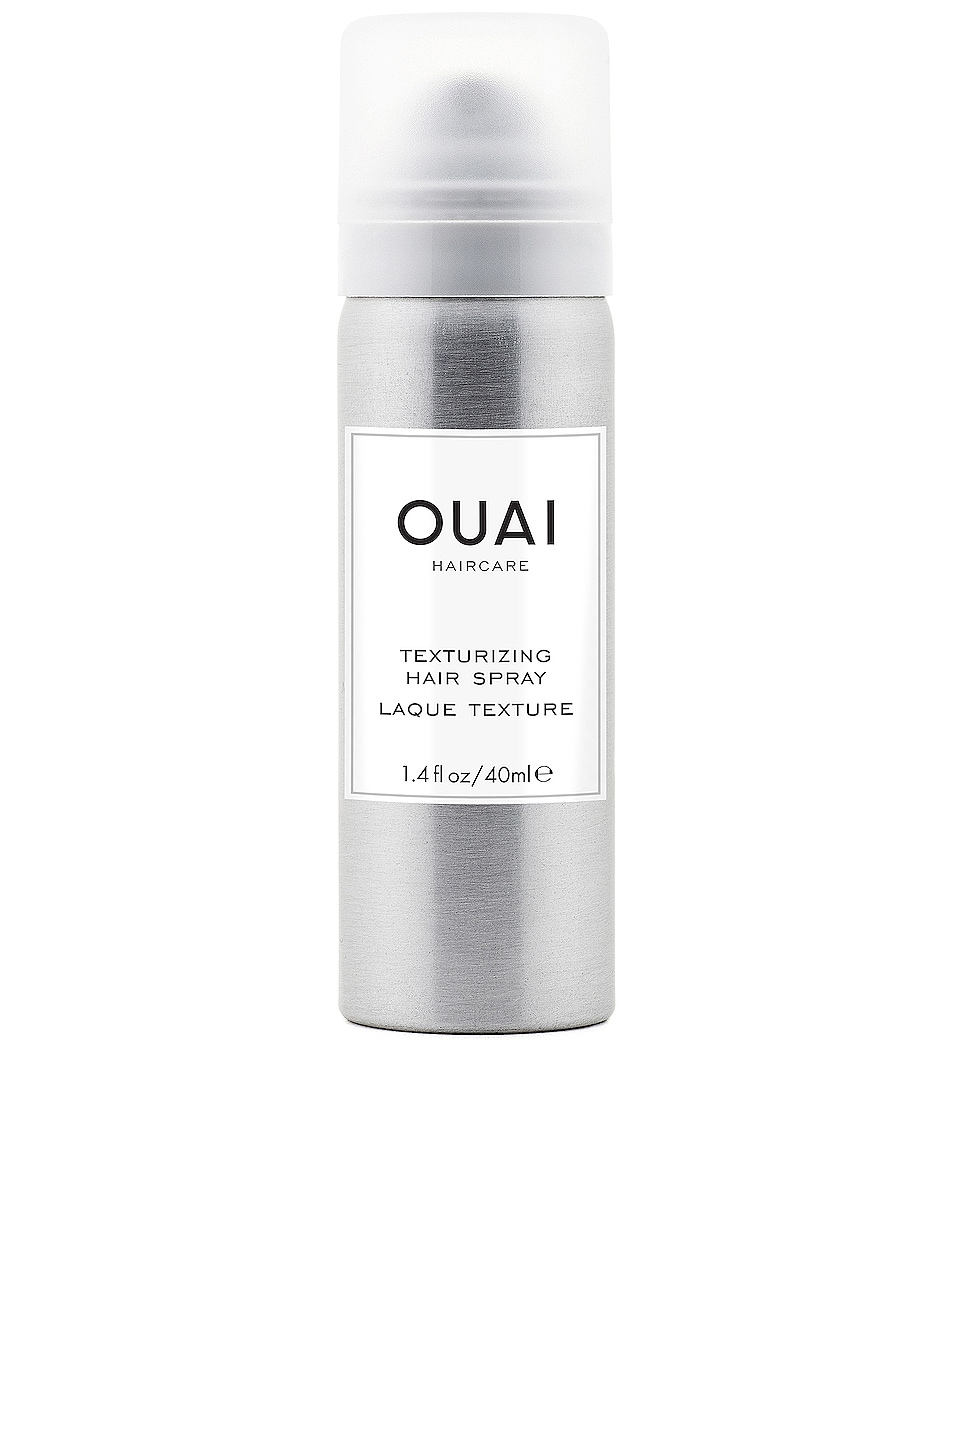 OUAI Travel Texturizing Hair Spray